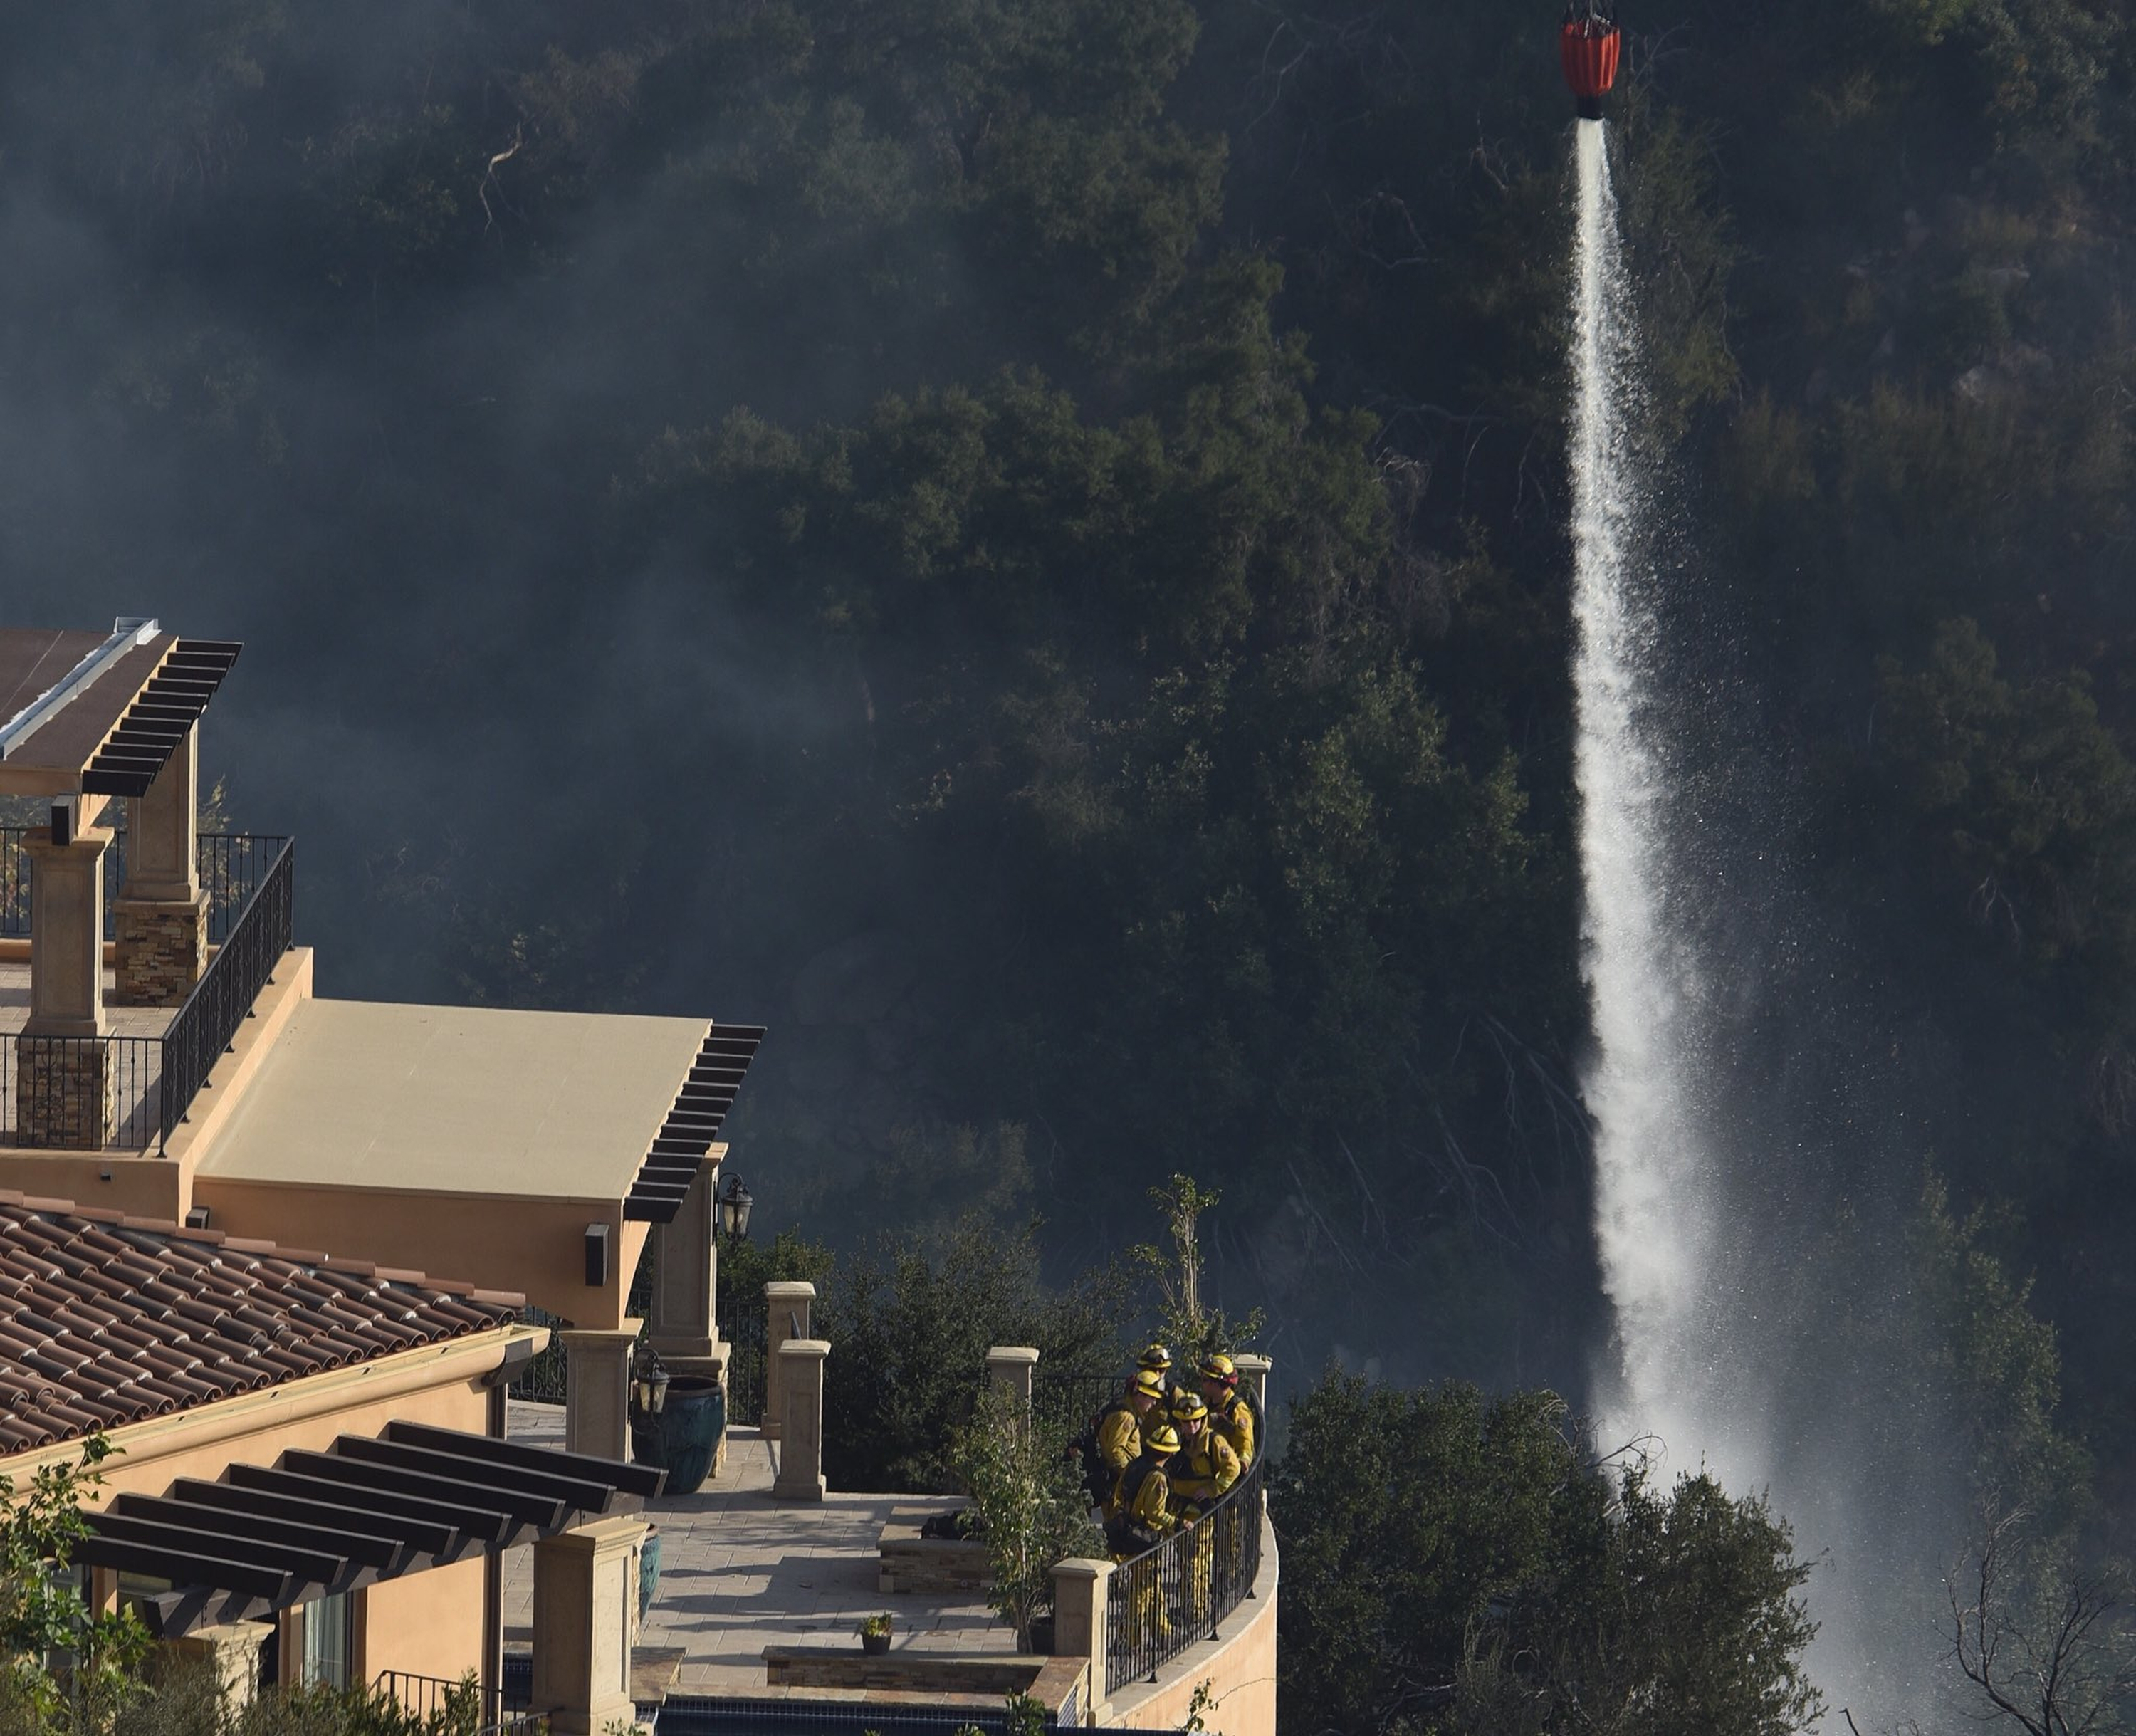 In this photo provided by the Santa Barbara County Fire Department, firefighters standing guard and providing structure protection at a home off Gibraltar Road watch as a bucket full of water is dropped from a helicopter onto a hot spot nearby in Santa Barbara, Calif., Sunday morning, Dec. 17, 2017. The fire has burned more than 700 homes and currently threatens communities in Santa Barbara County. Some 8,000 firefighters are deployed to the so-called Thomas Fire, which has burned for nearly two weeks and still threatens 18,000 homes. (Mike Eliason/Santa Barbara County Fire Department via AP)